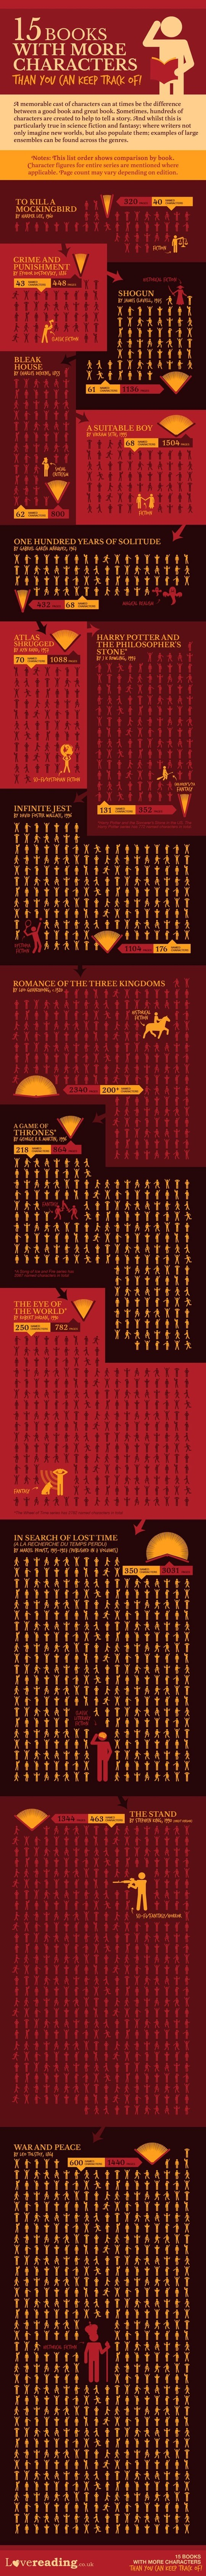 15 books with more characters than you can keep track of #infographic